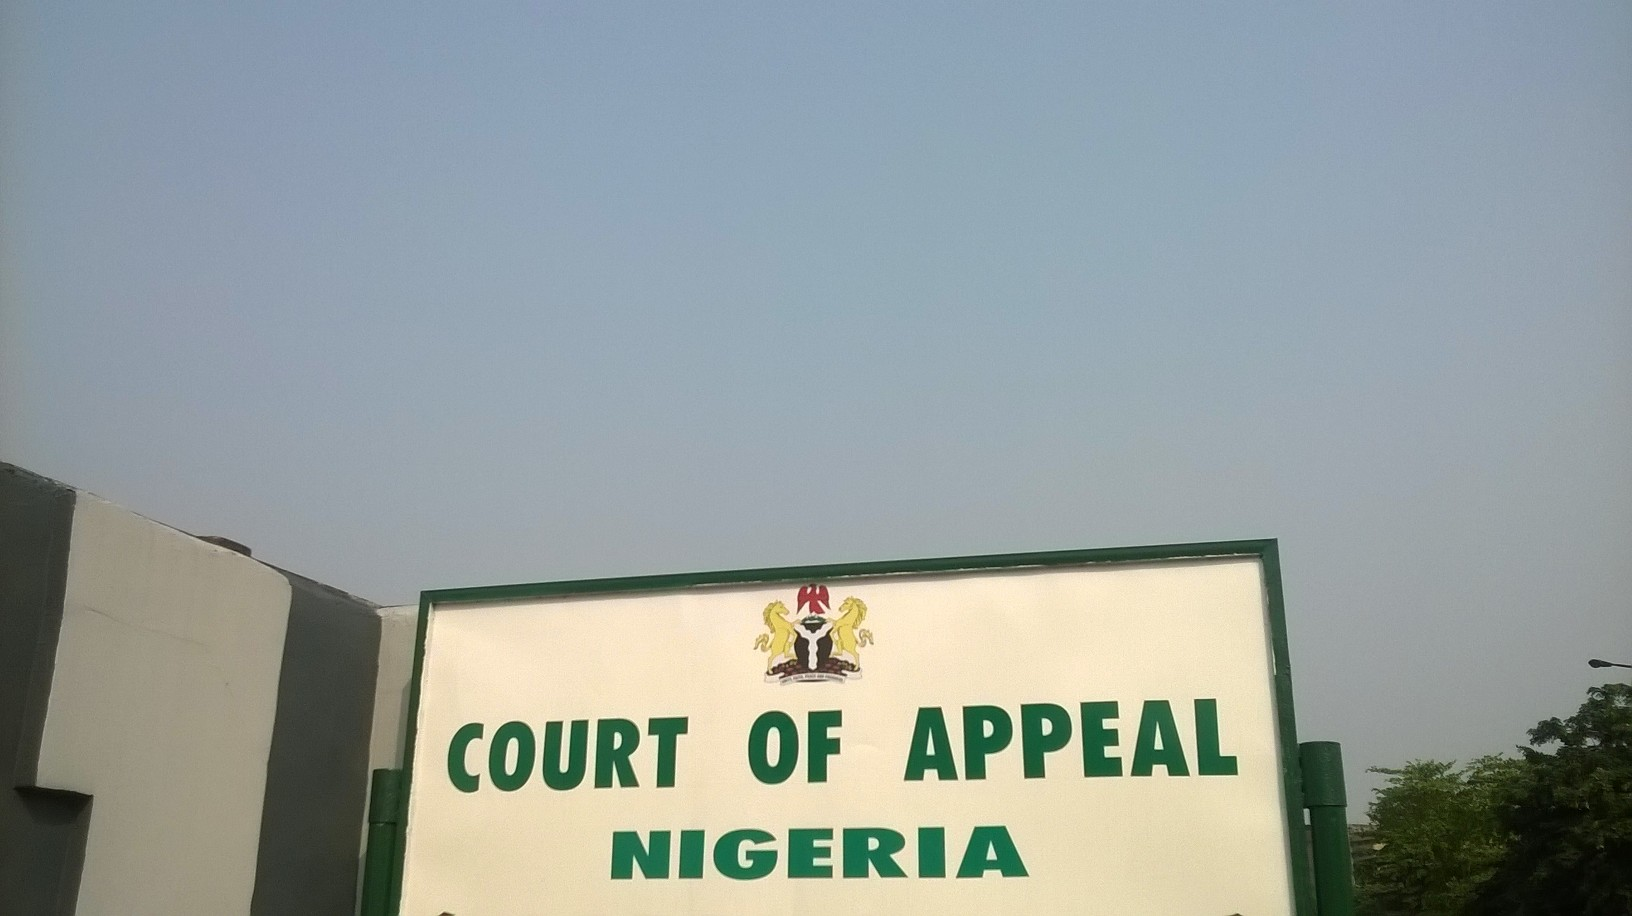 Court of Appeal of Nigeria